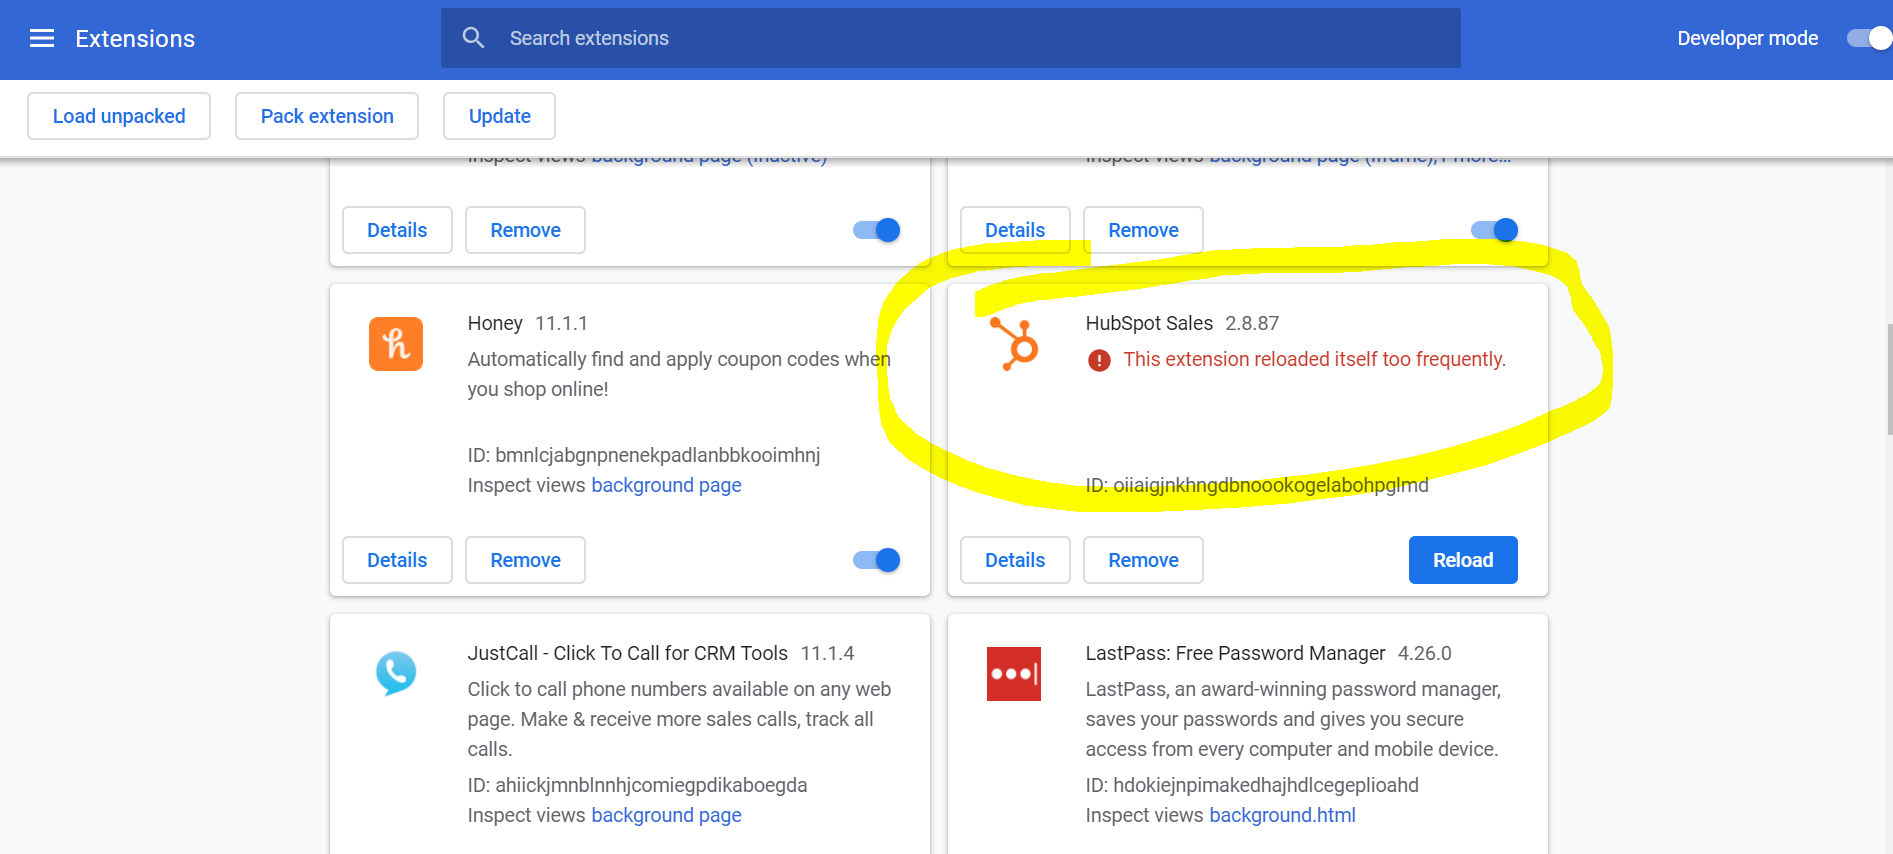 HubSpot Community - Chrome and Gmail extensions not working